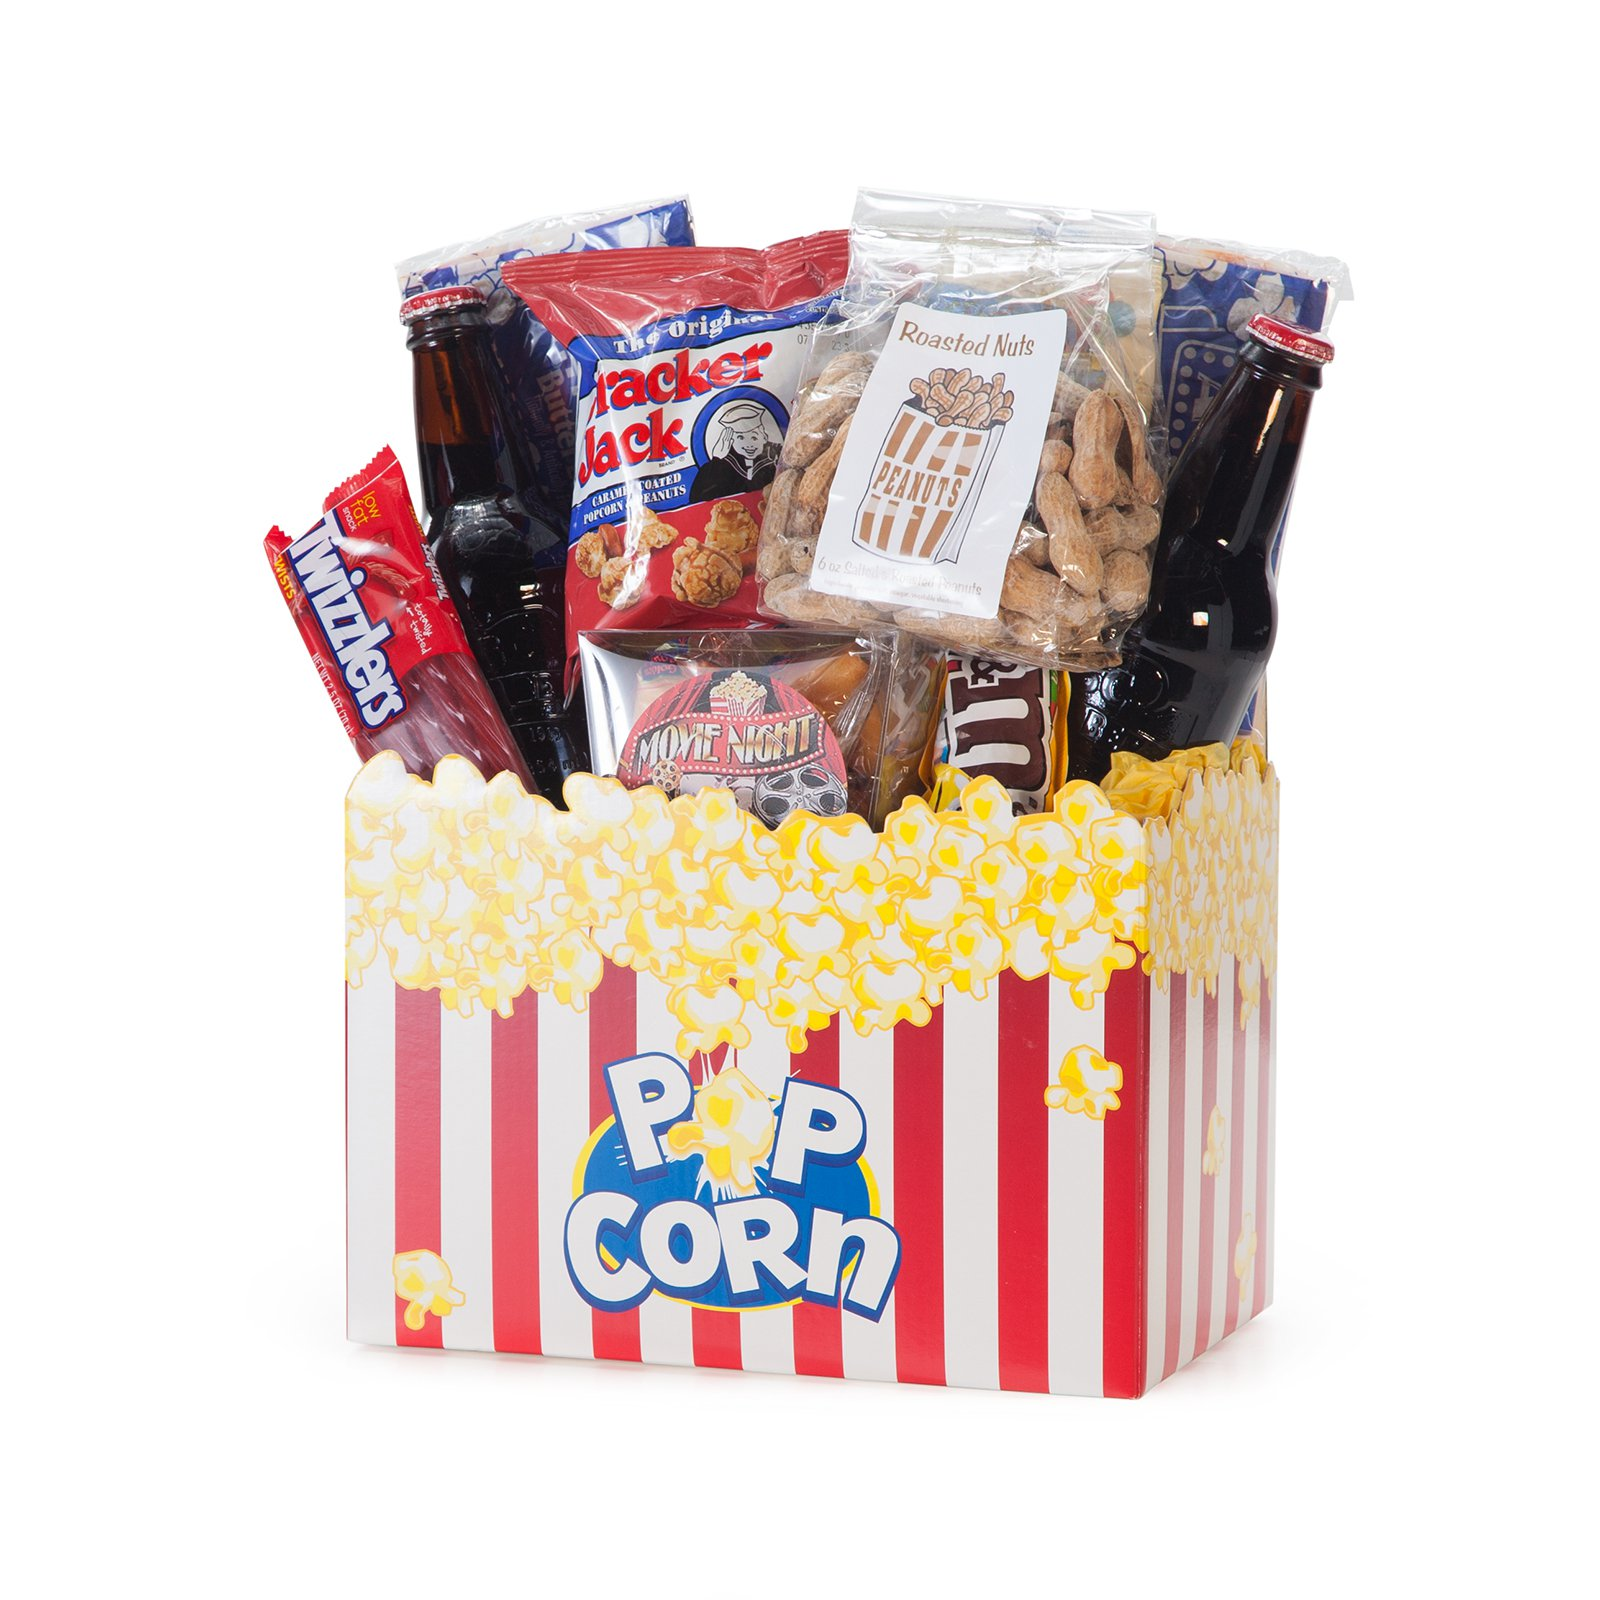 Movie Night Mania Gift Box - with 10.00 Redbox Credit